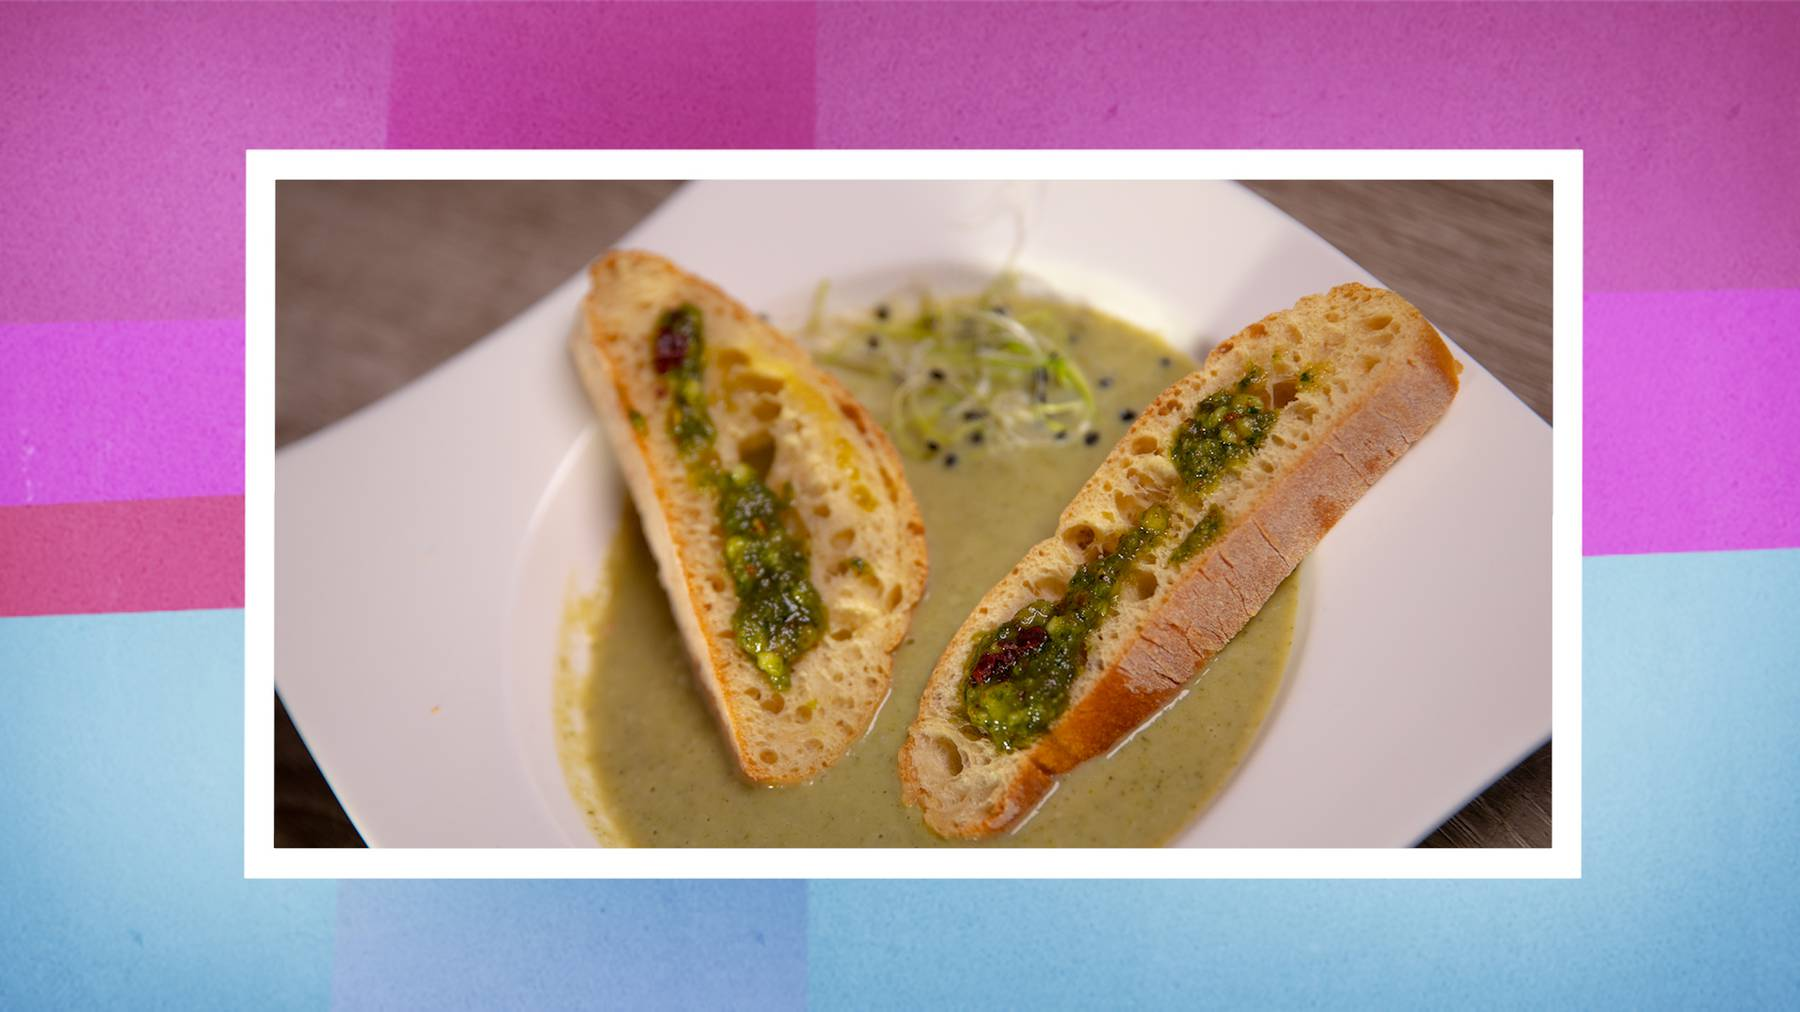 Broccoli-Suppe mit Pesto-Crostini